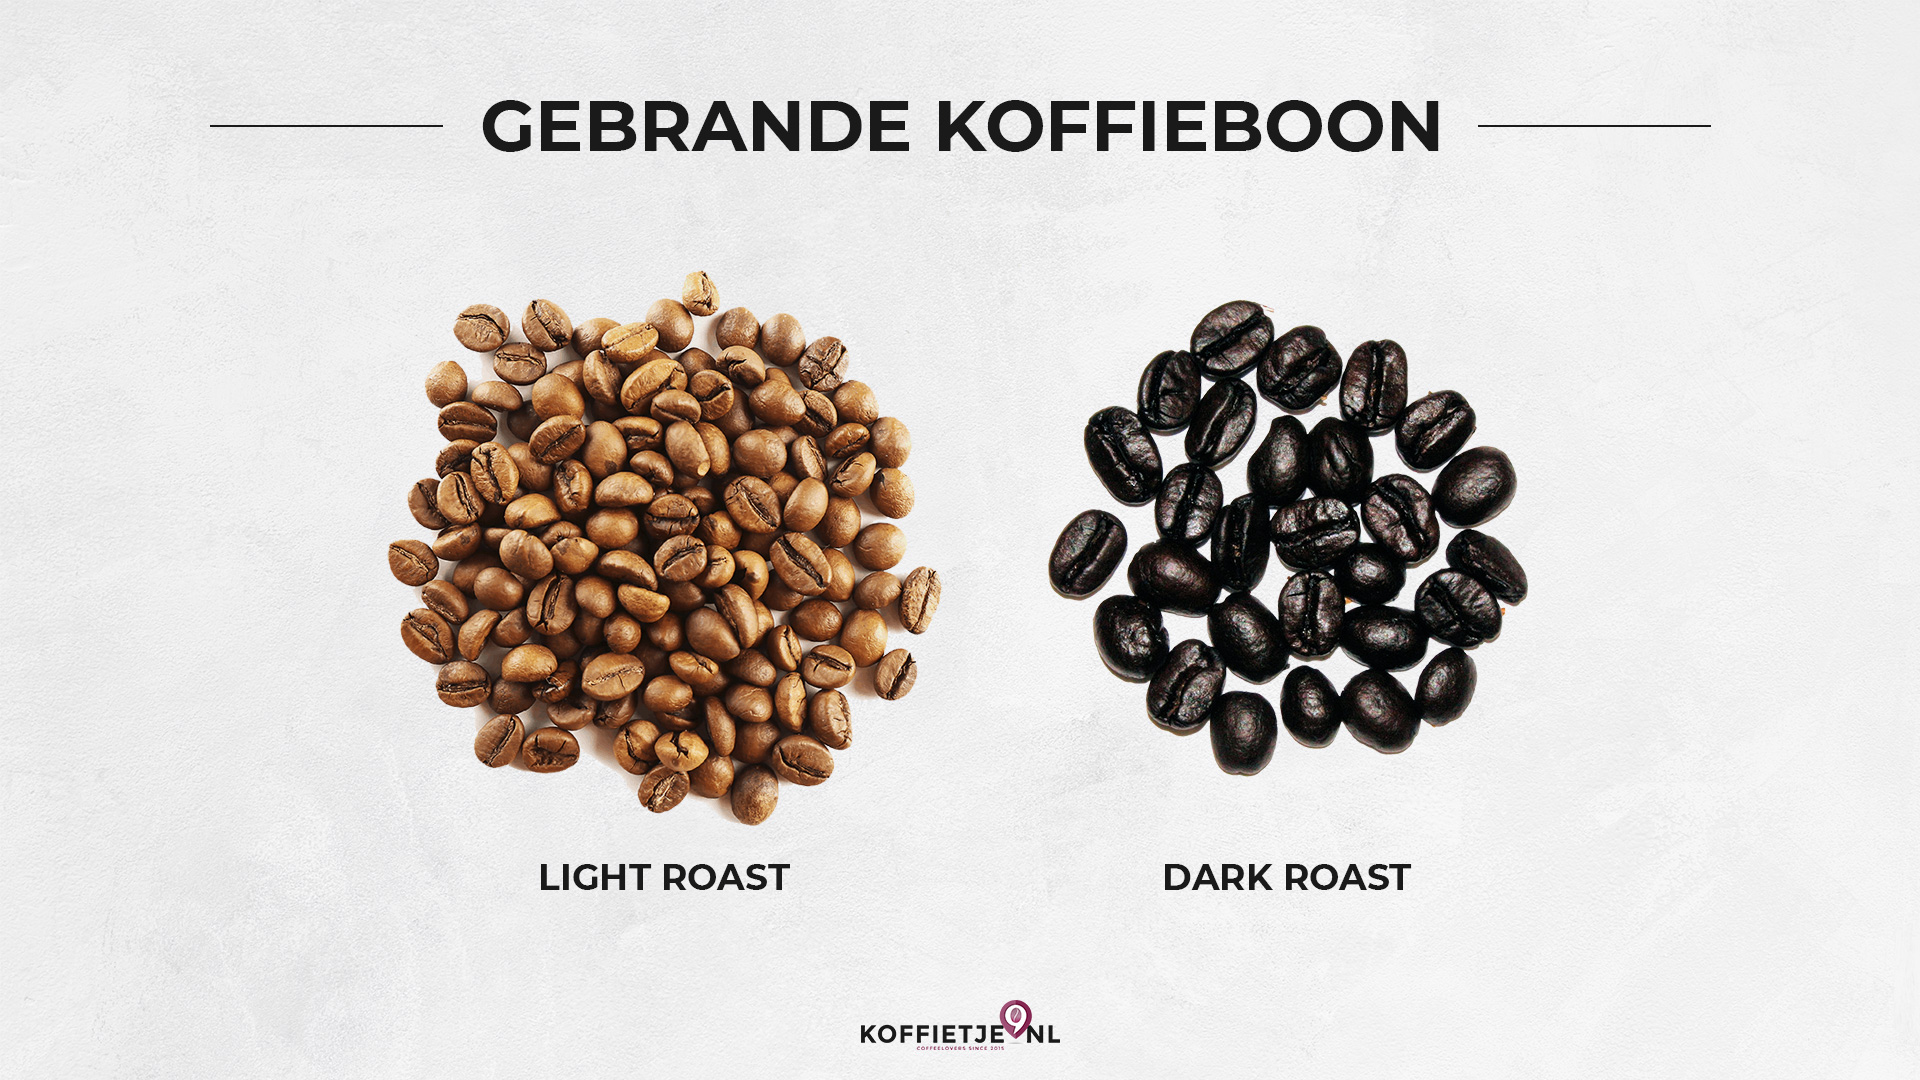 Gebrande koffieboon: van light roast tot dark roast